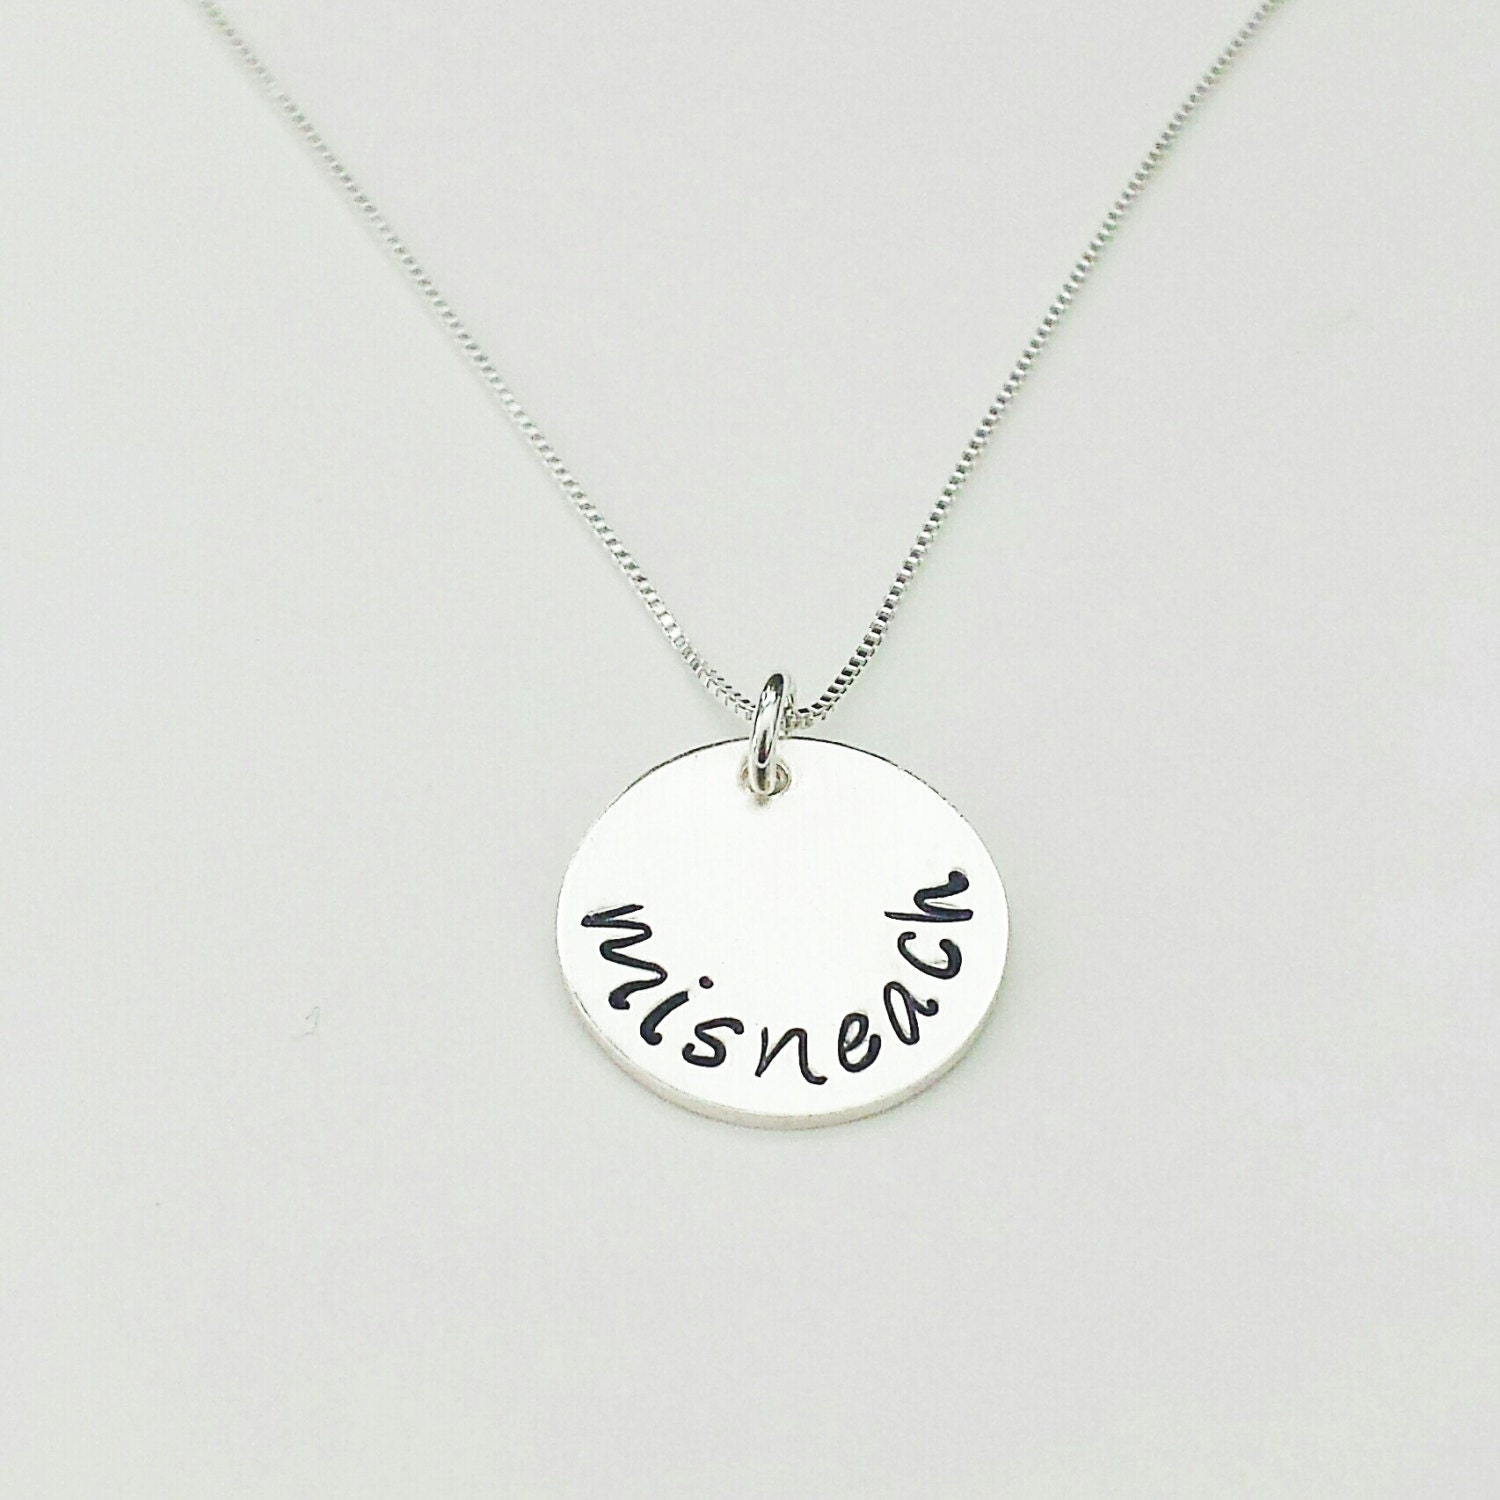 Misneach Irish Courage Necklace Sterling Silver Necklace Hand